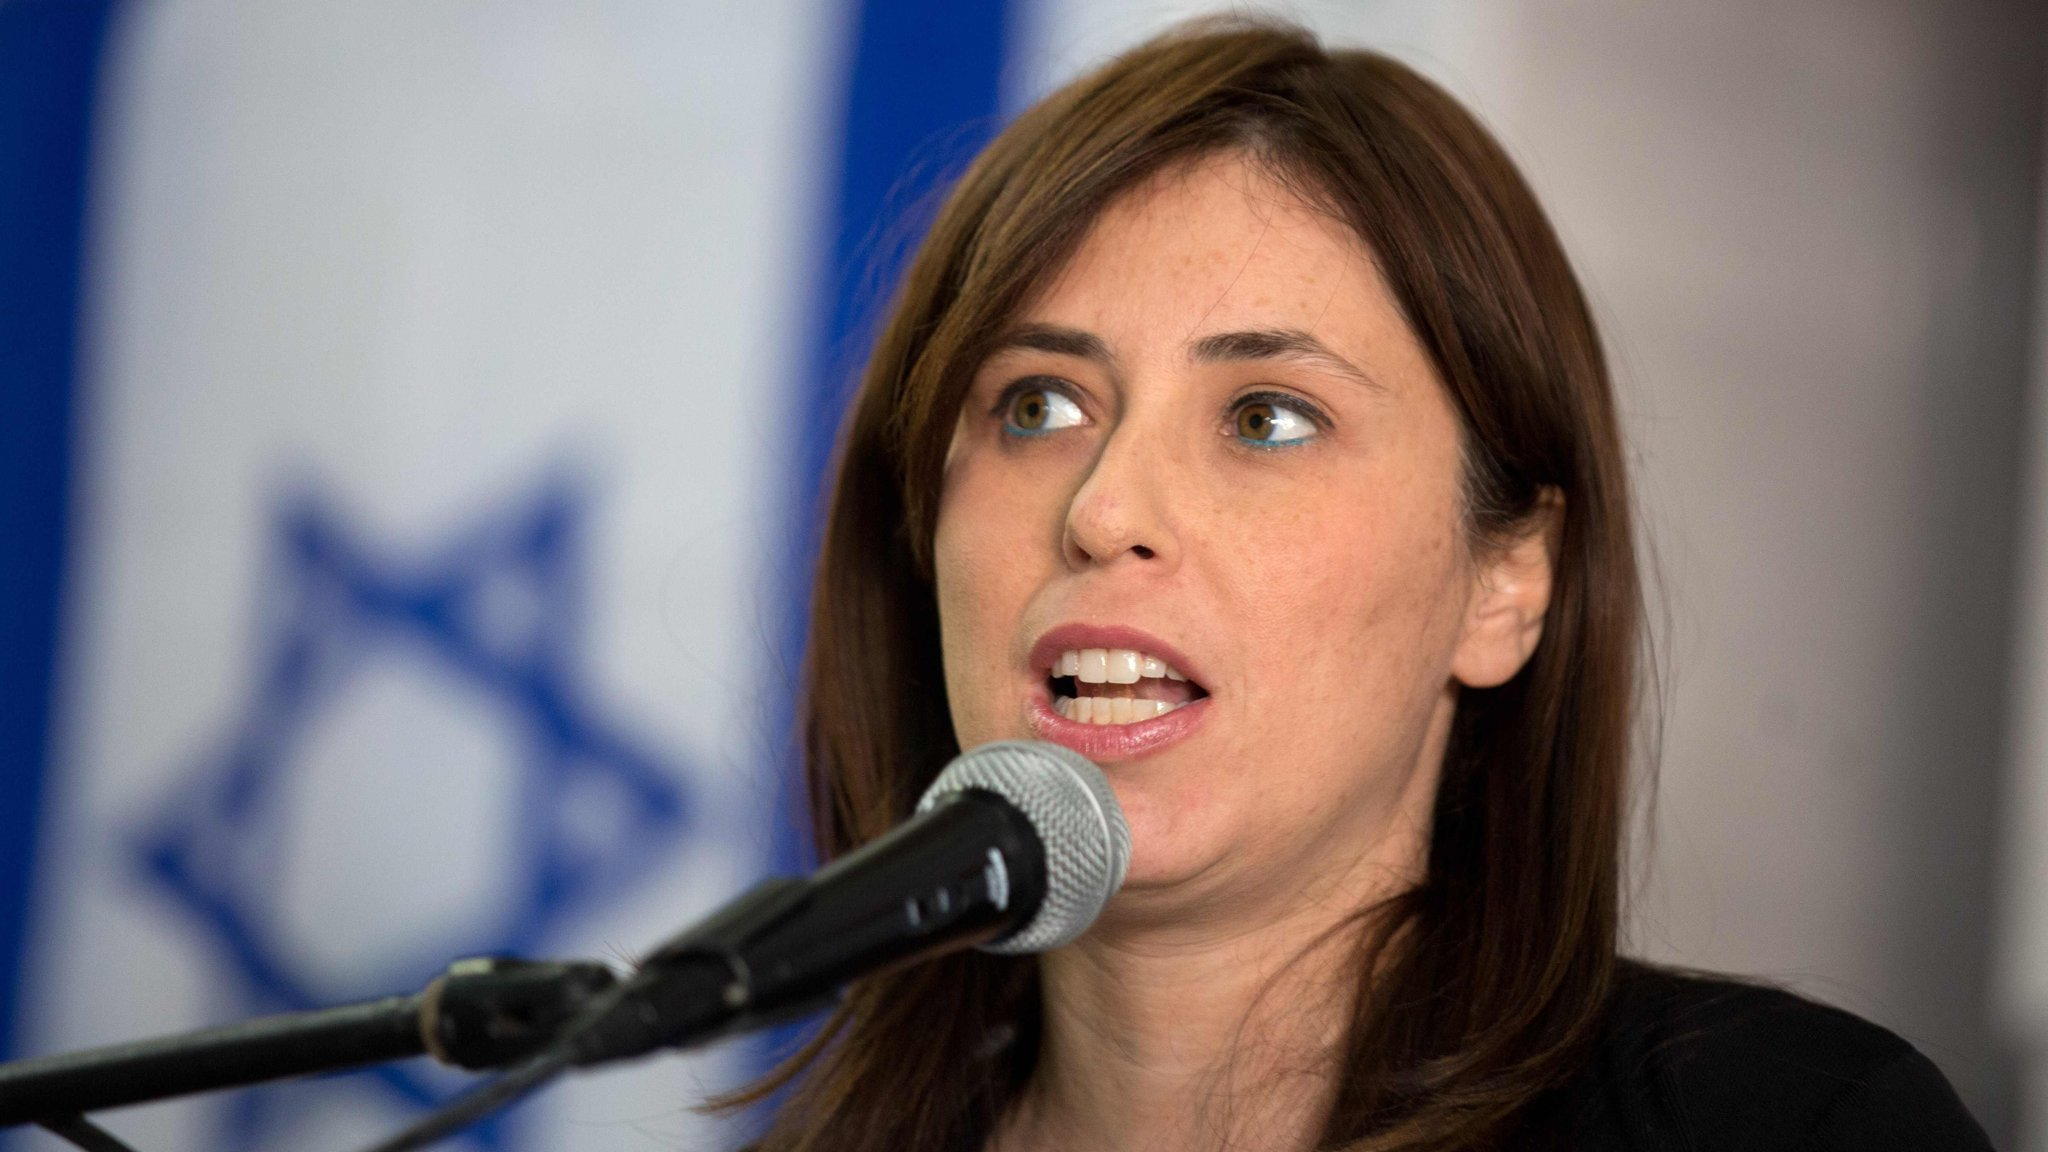 Israeli minister rebuked for disparaging remarks about US Jews